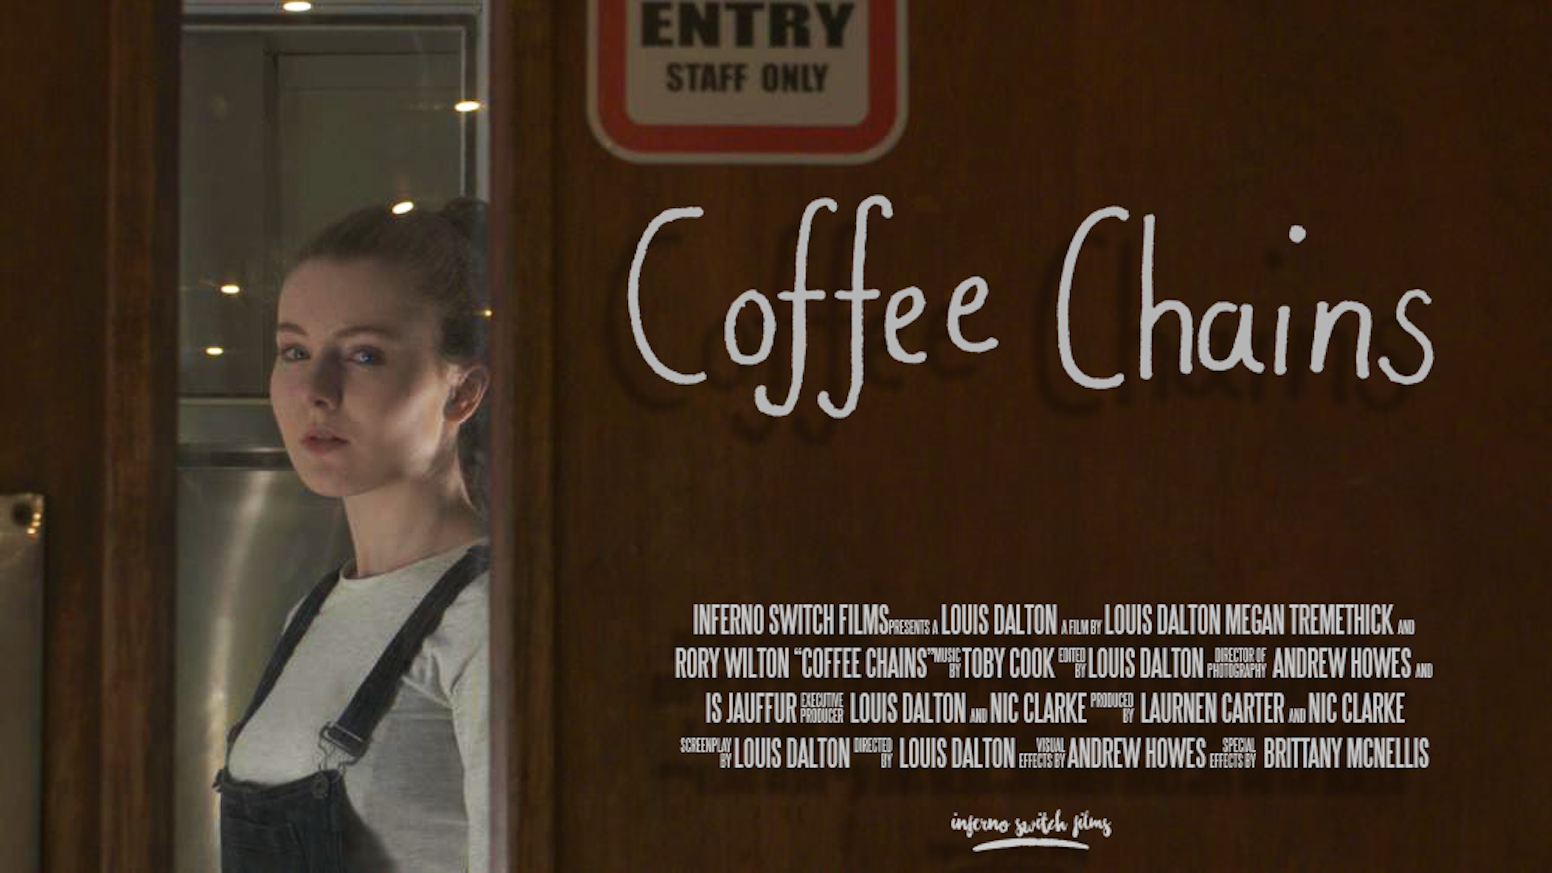 Coffee Chains is a 10m Drama which is both motivational and comedic. Starring Megan Tremethick and Rory Wilton (Poldark, Doc Martin).